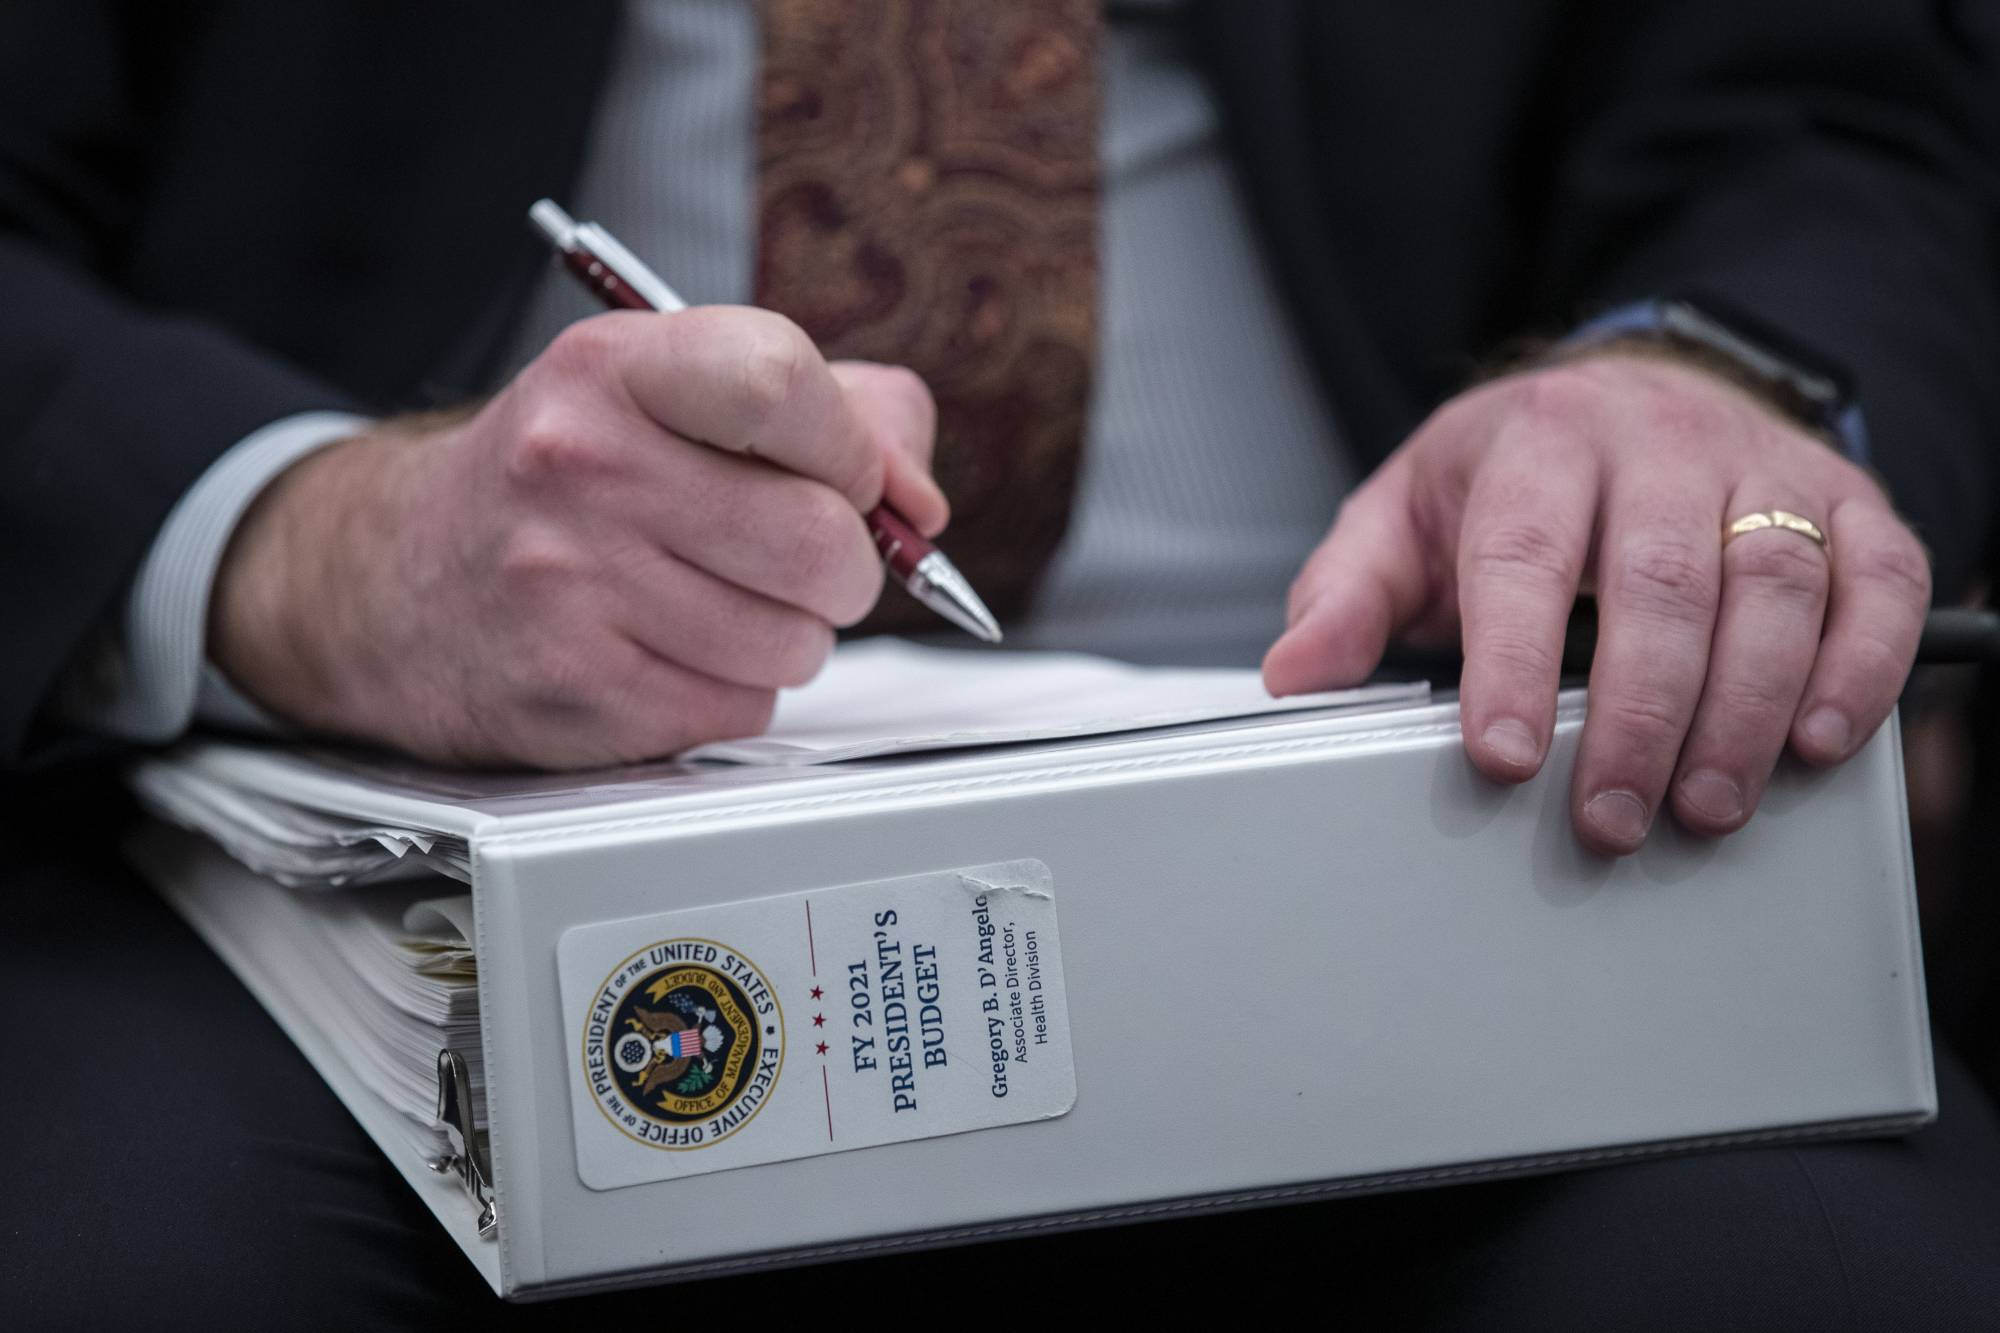 An aide holds a copy of the President's Budget for 2021, as Office of Management and Budget Acting Director Russell Vought testifies during a hearing of the House Budget Committee about President Trump's budget for Fiscal Year 2021, on Capitol Hill, Wednesday, Feb. 12, 2020, in Washington. (AP Photo/Alex Brandon)